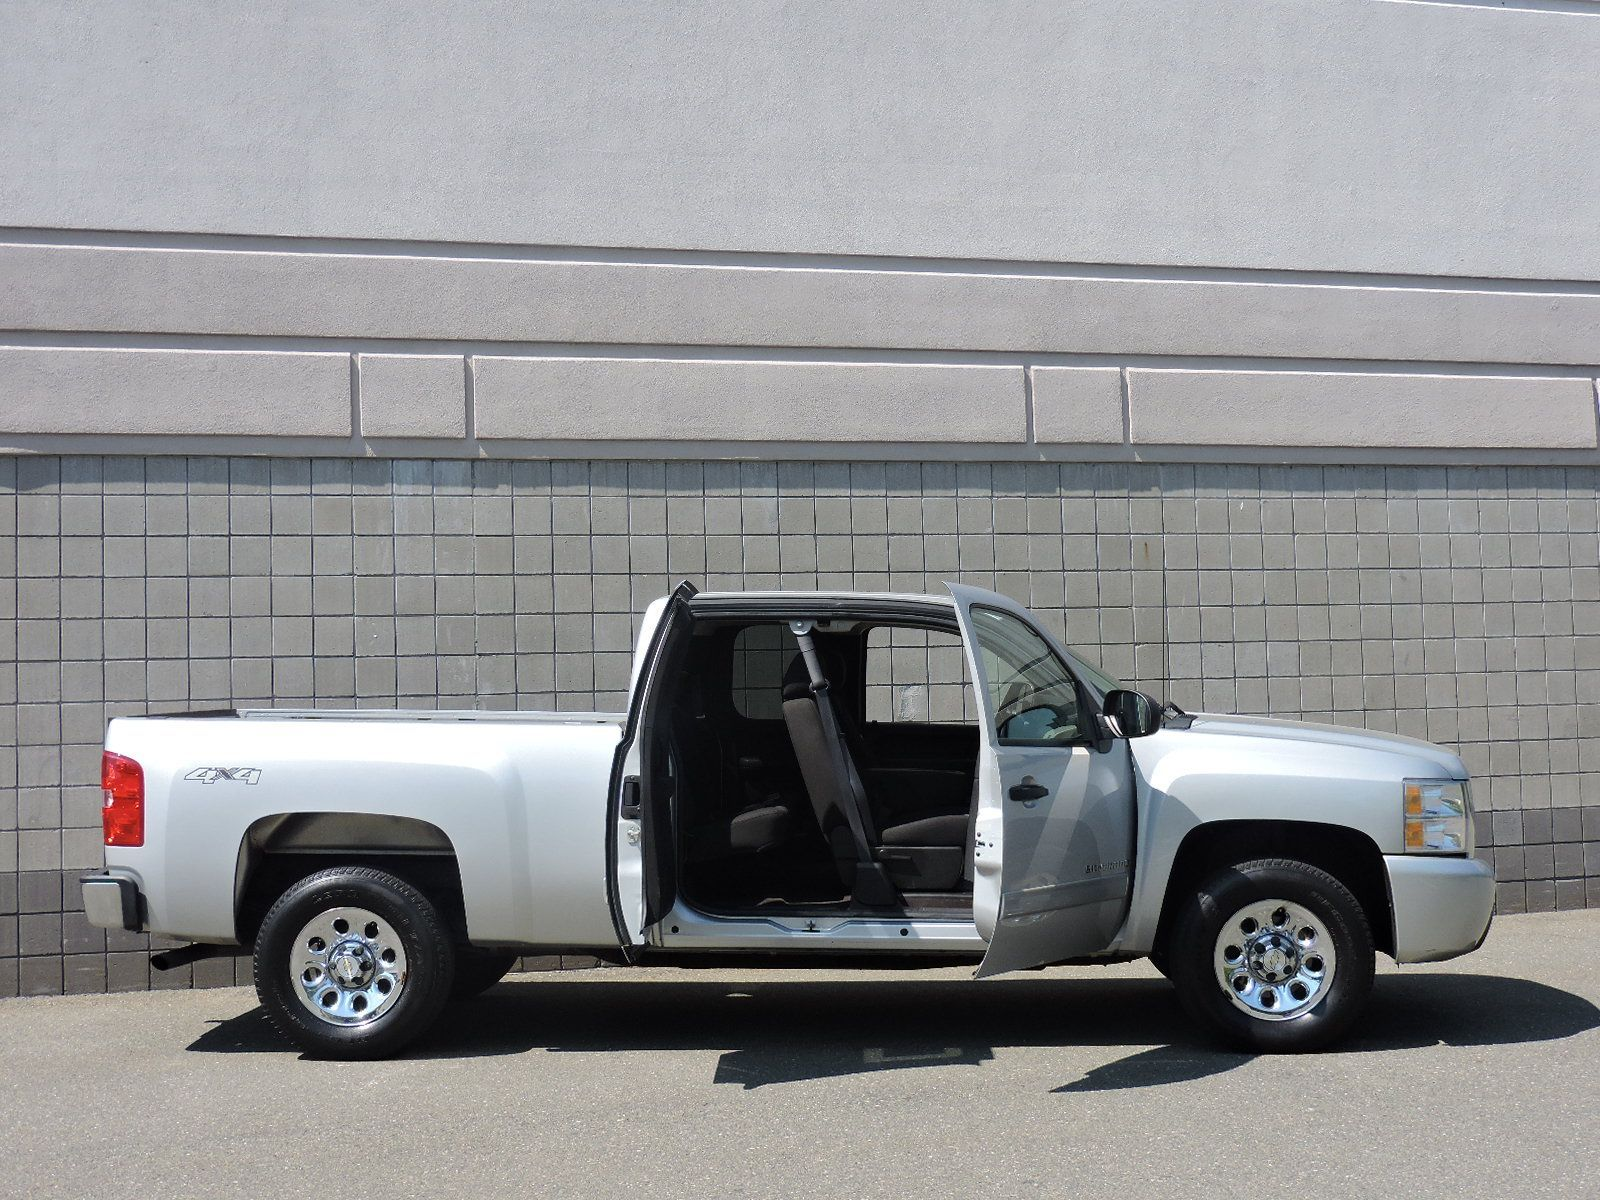 Used 2011 Chevrolet Silverado 1500 Ls At Auto House Usa Saugus